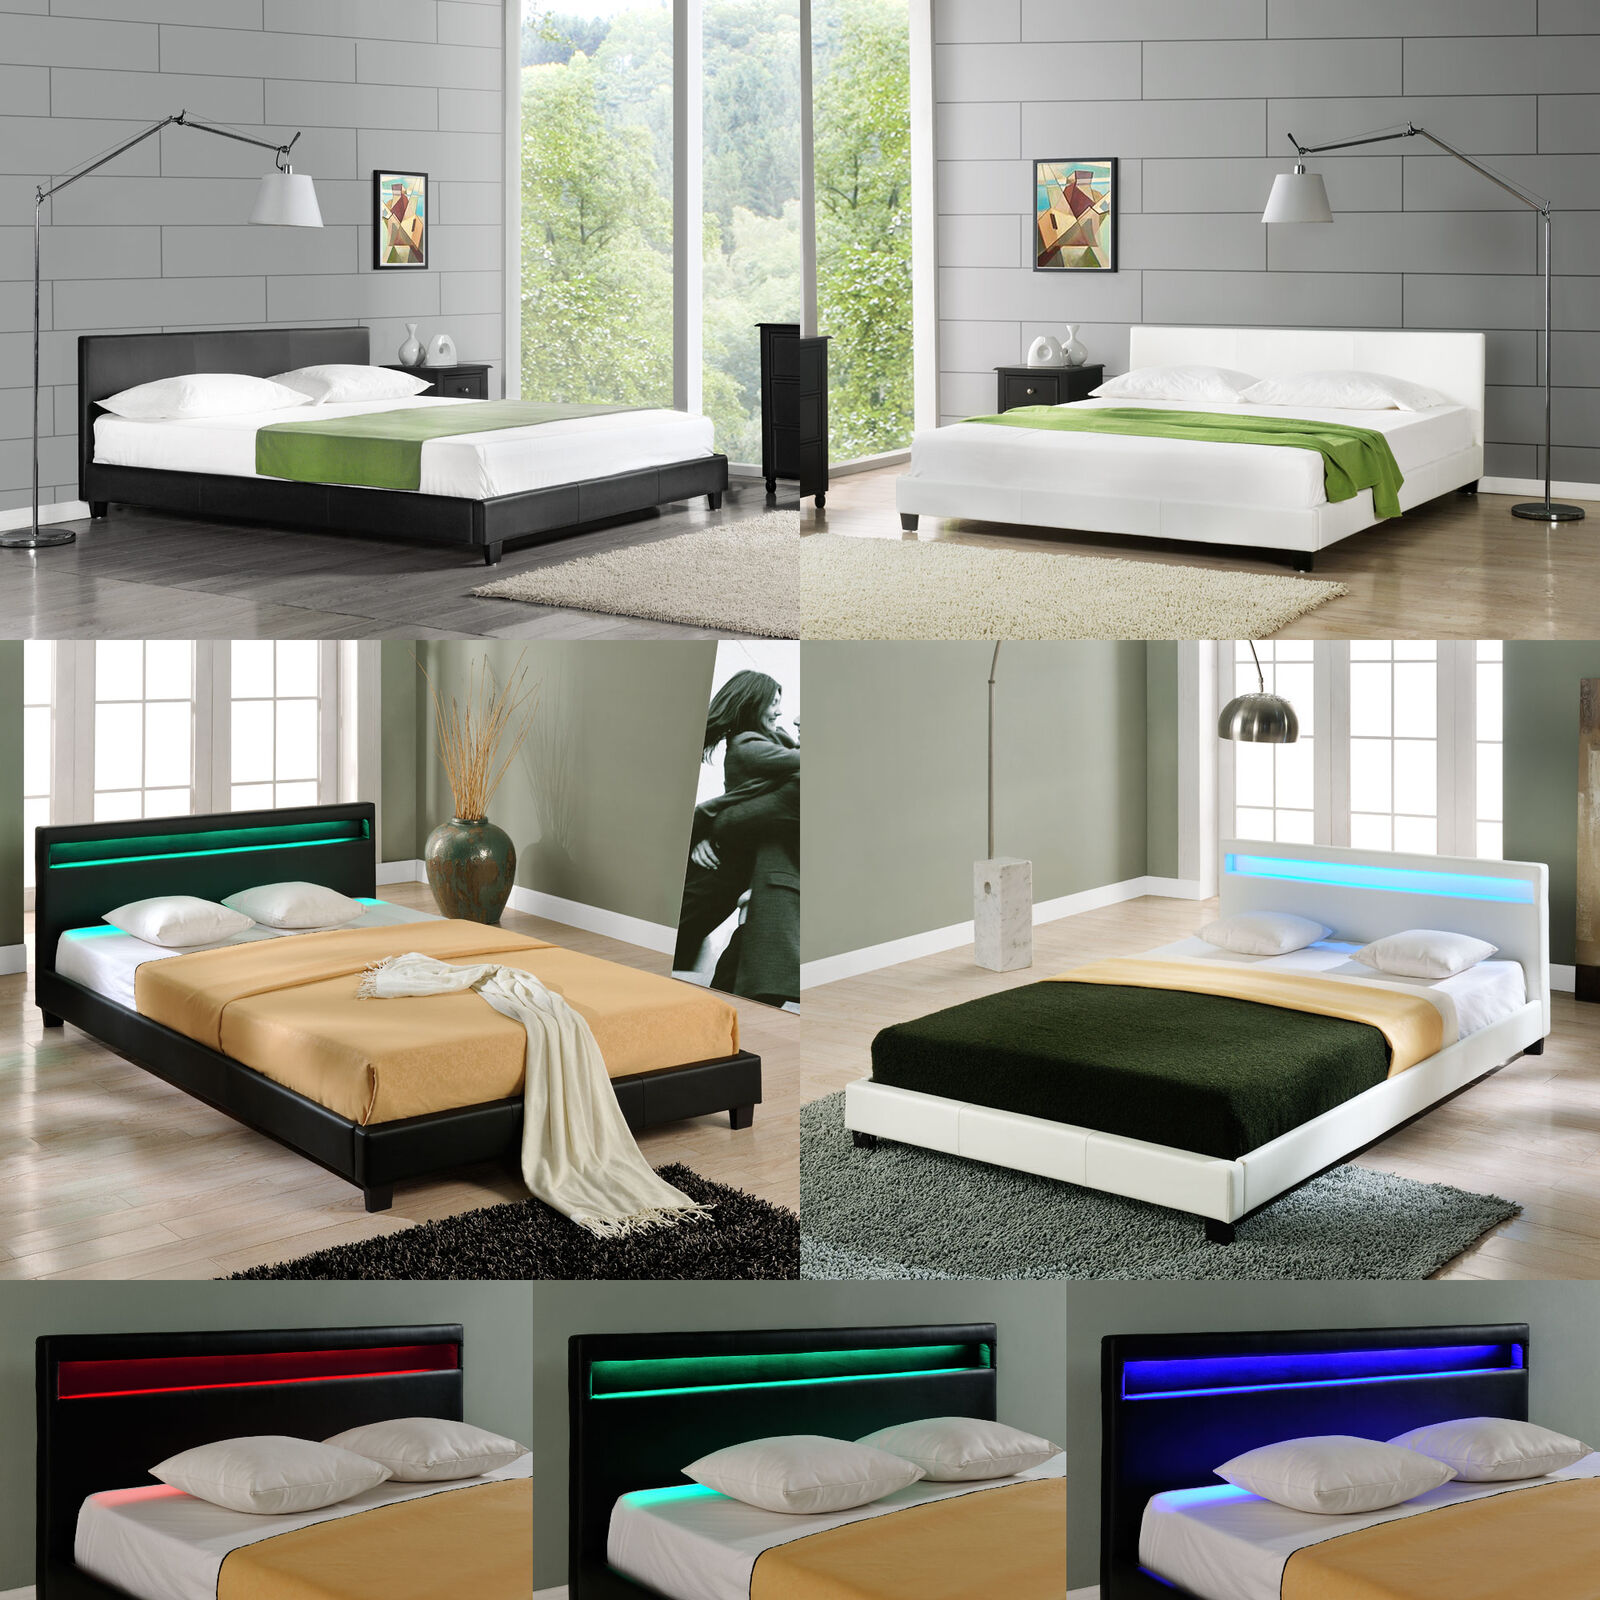 corium led polsterbett 140 160 180 200x200cm bett doppelbett kunst leder eur 109 99 picclick de. Black Bedroom Furniture Sets. Home Design Ideas